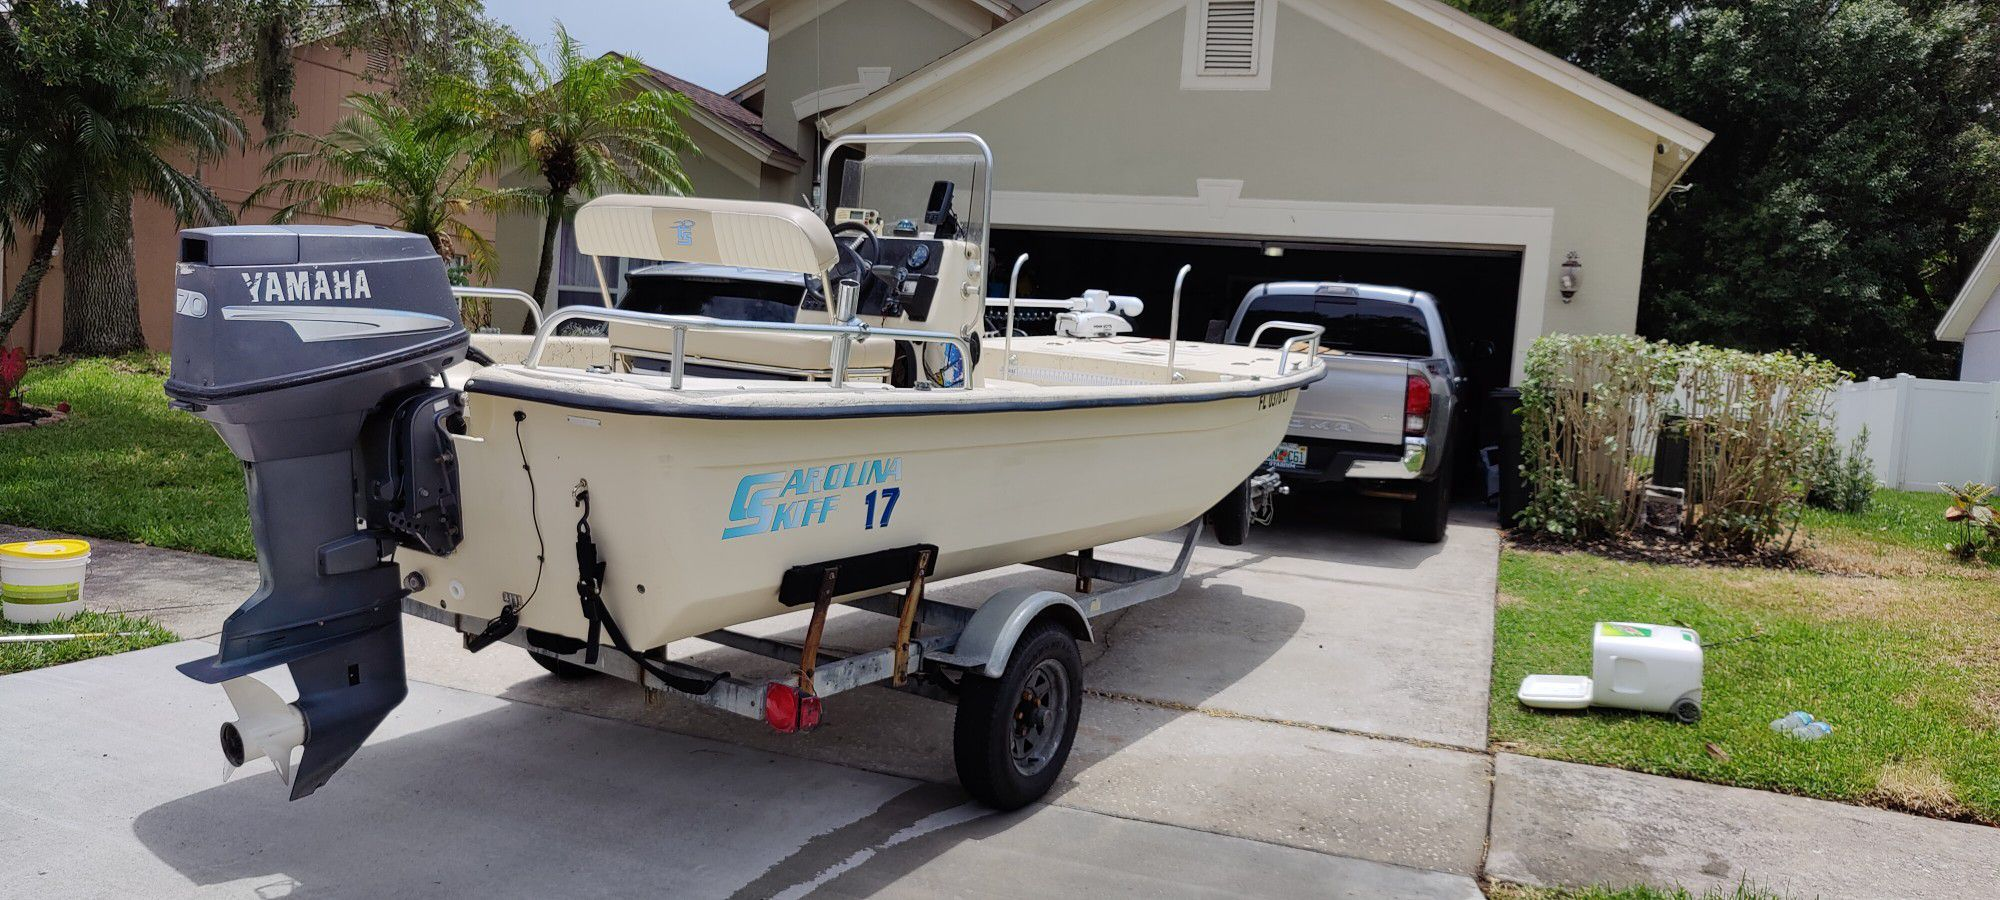 Photo Turn key Solid boat for sale, 17ft Carolina Skiff center console, no soft spots. Garmin GPS fish finder. Two brand new batteries, new steering cable a